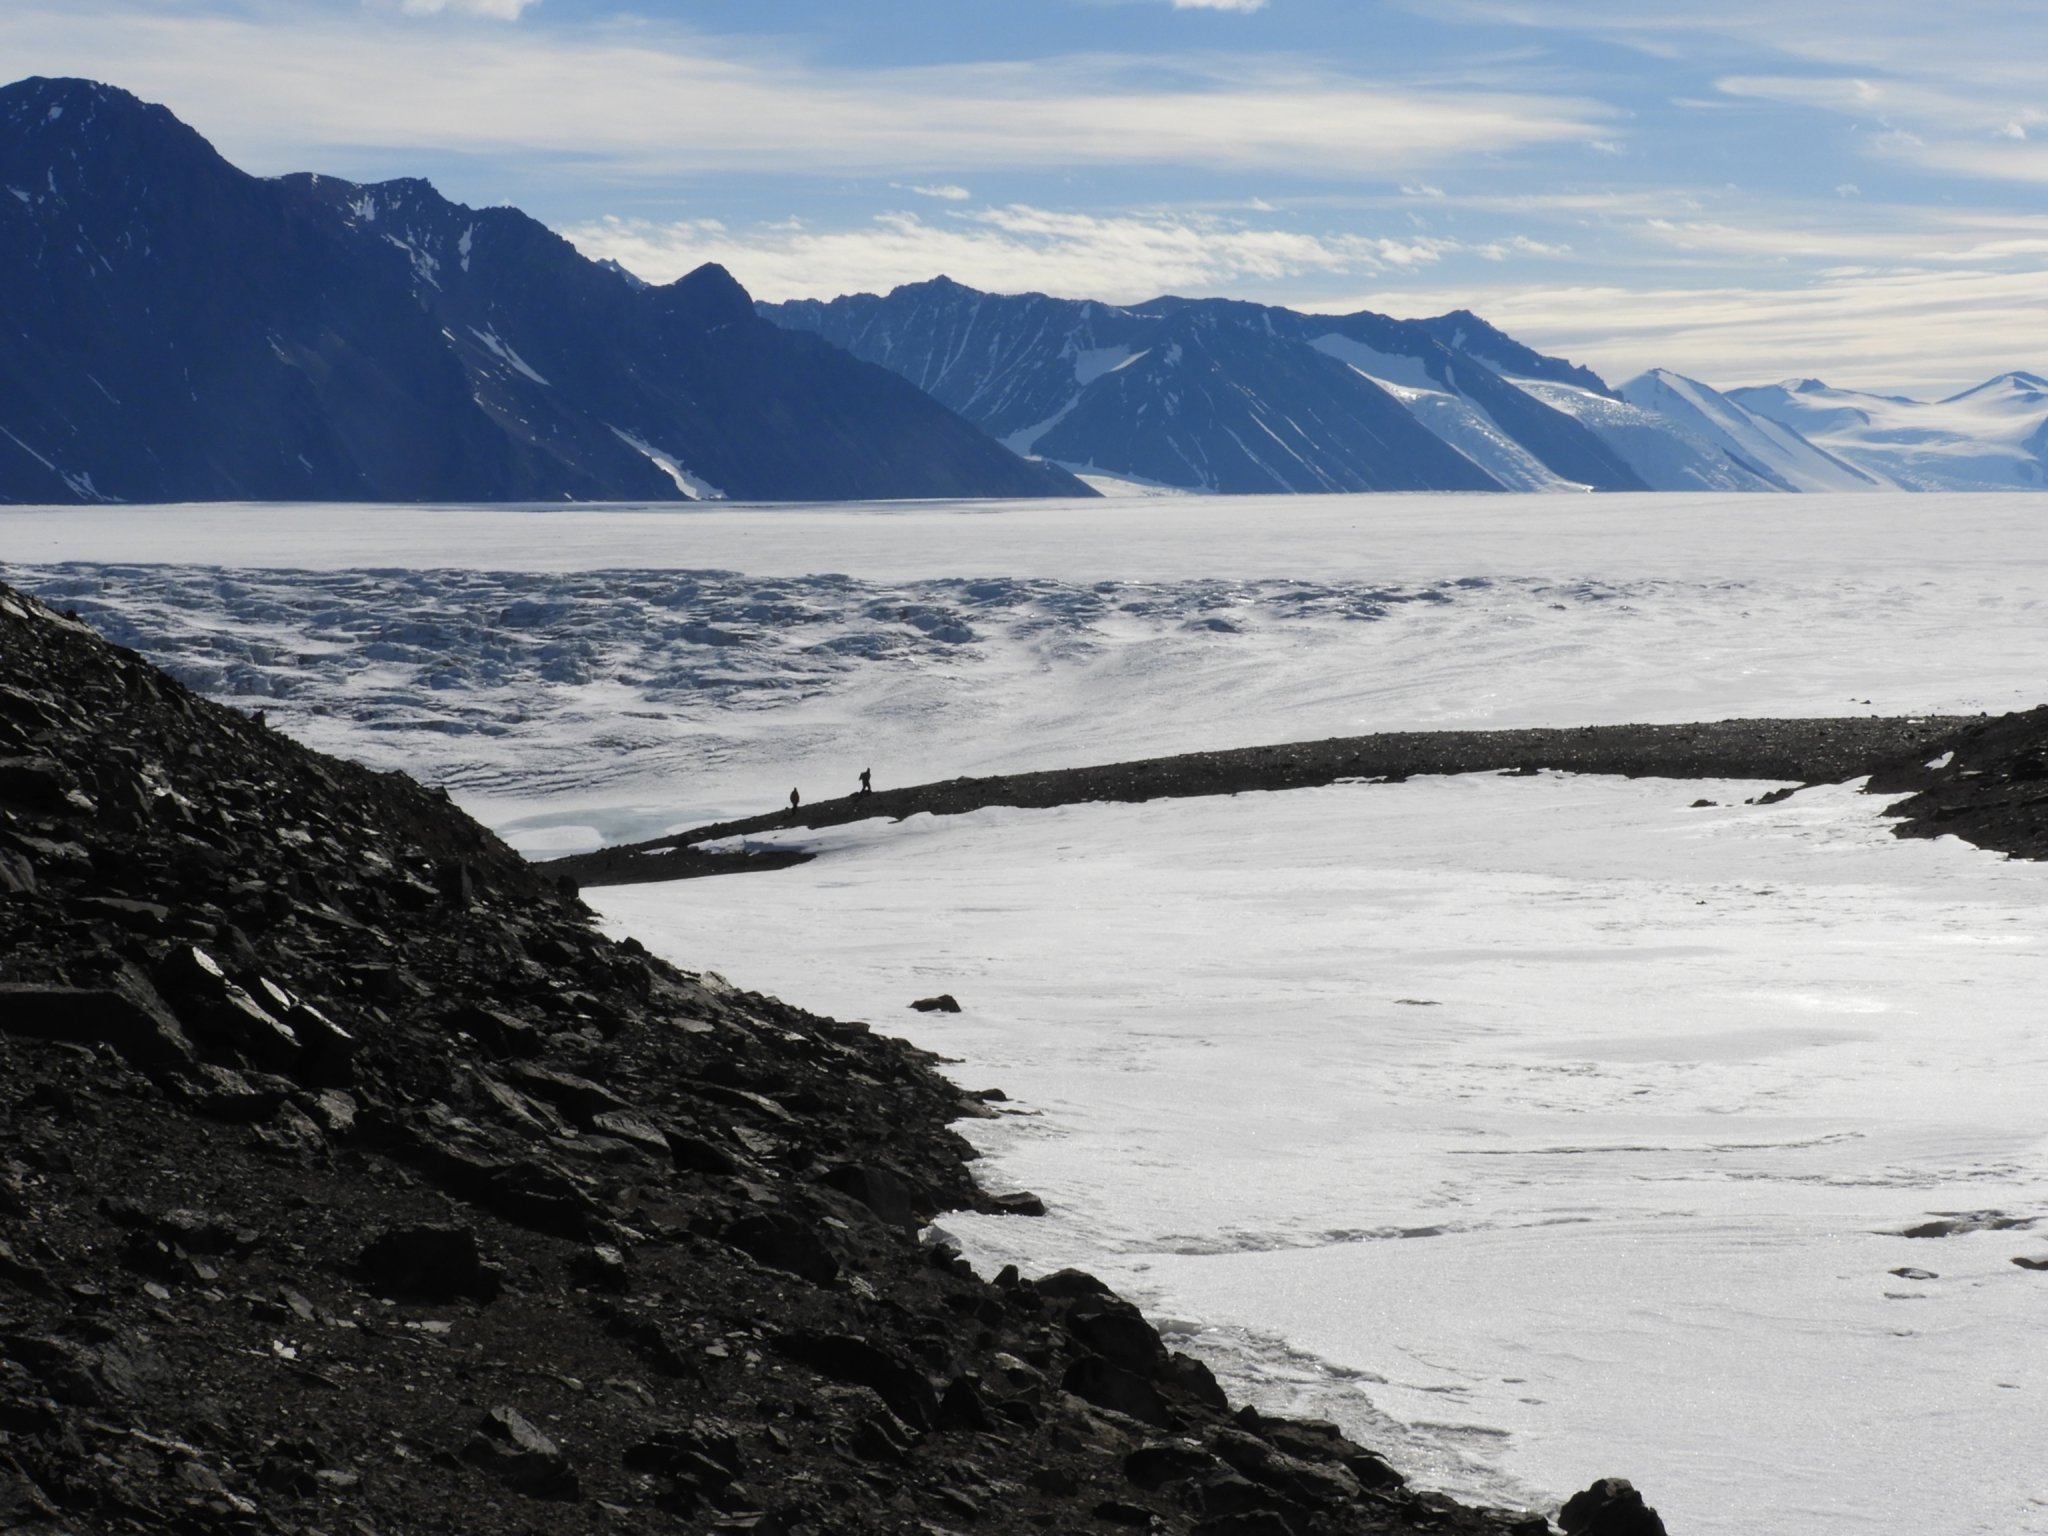 Soils from Antarctica seem to contain no life—something that's never been found